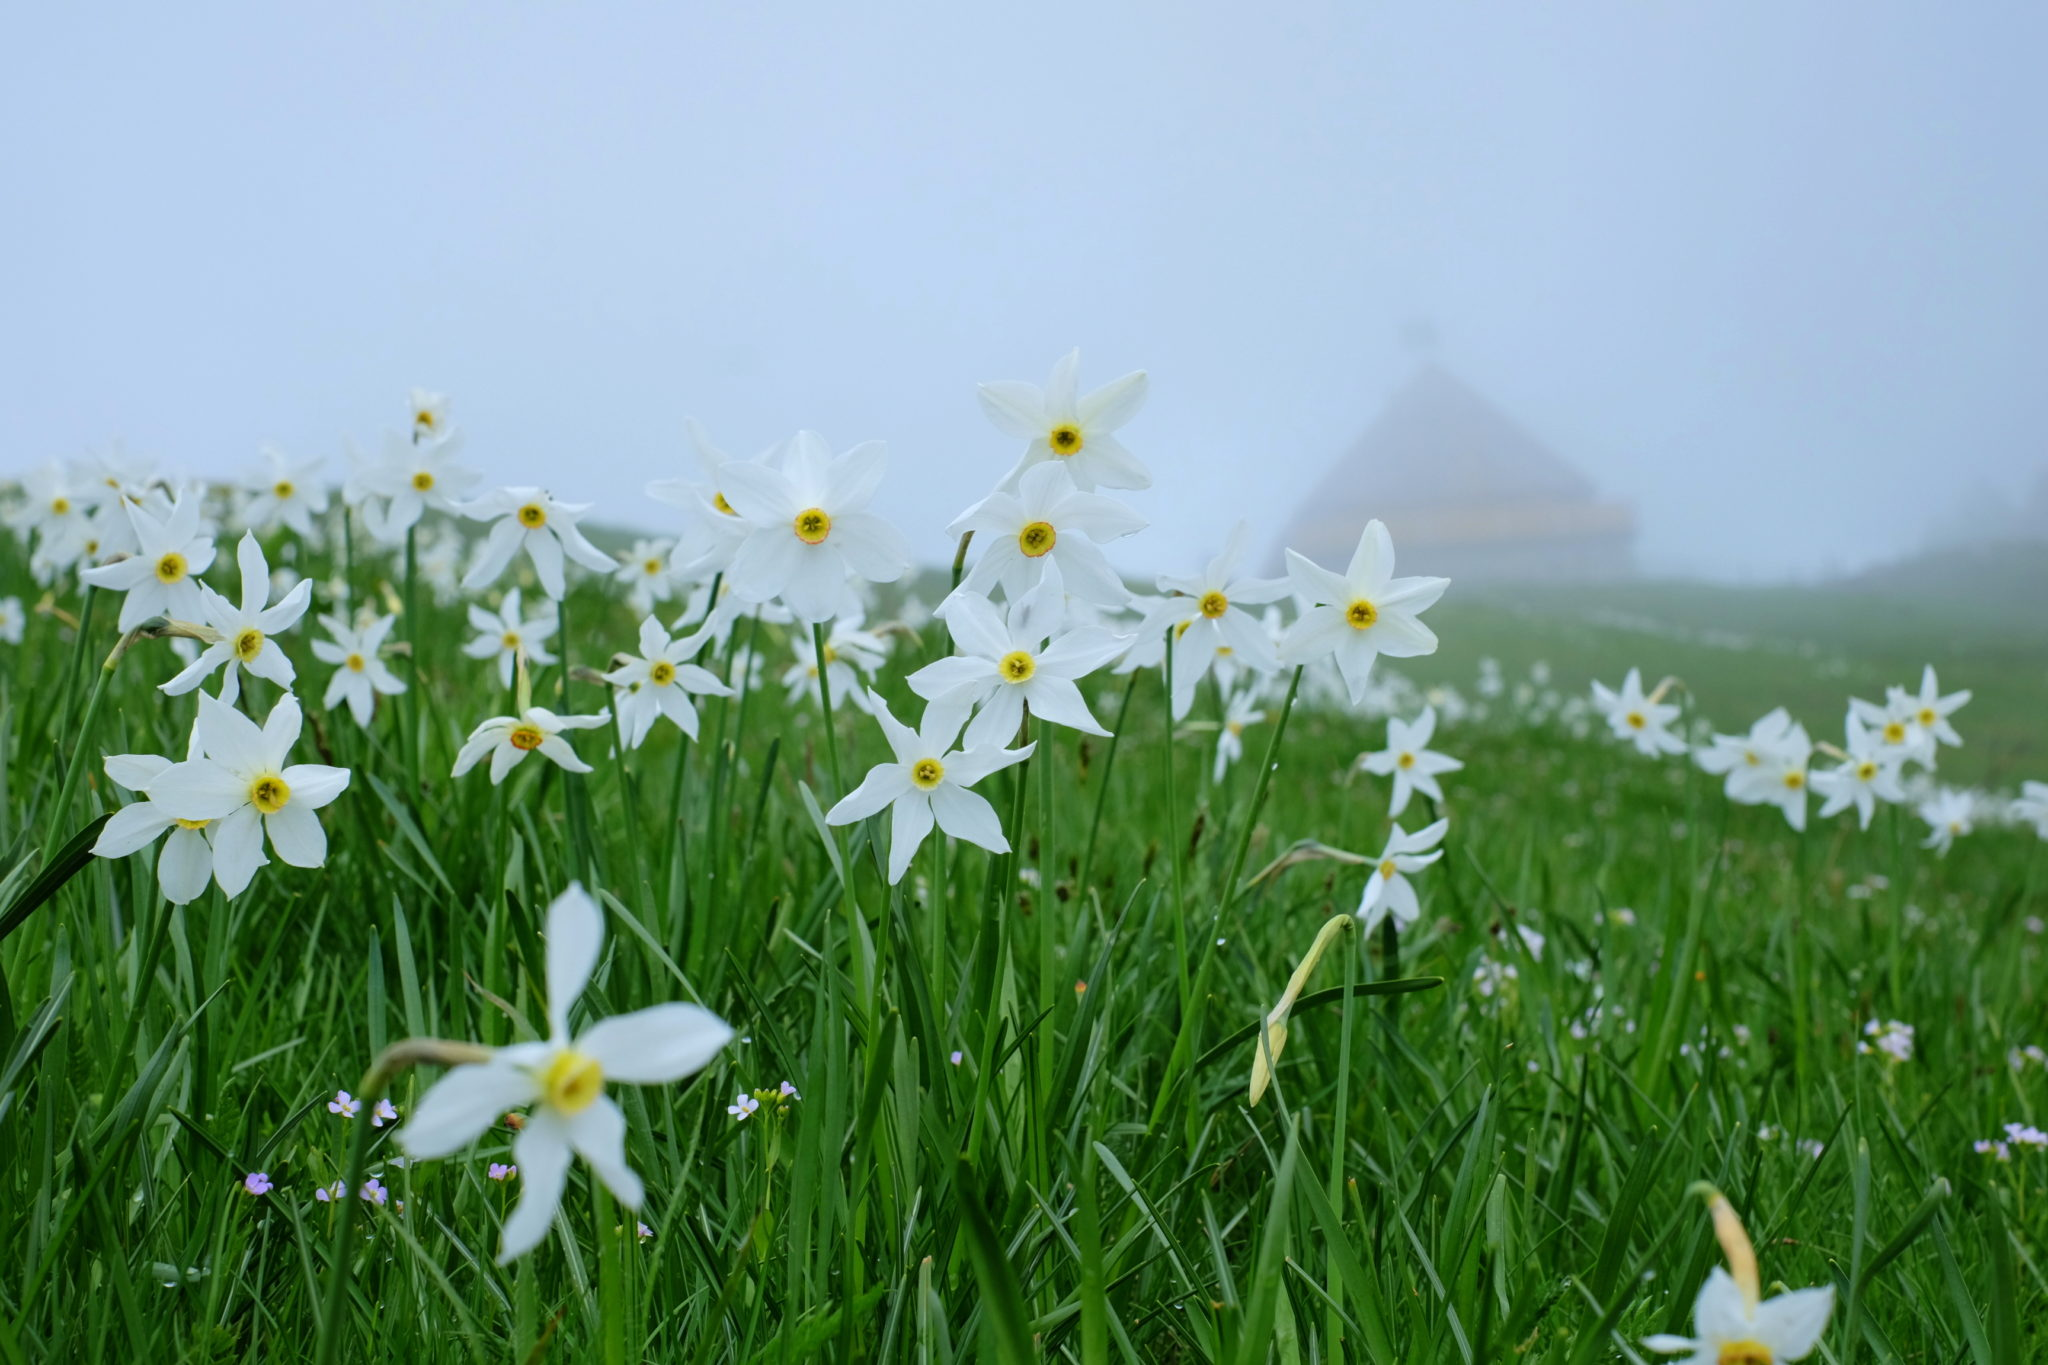 Daffodils on the Dovška Rožca Plateau, Slovenia, the Karawanks